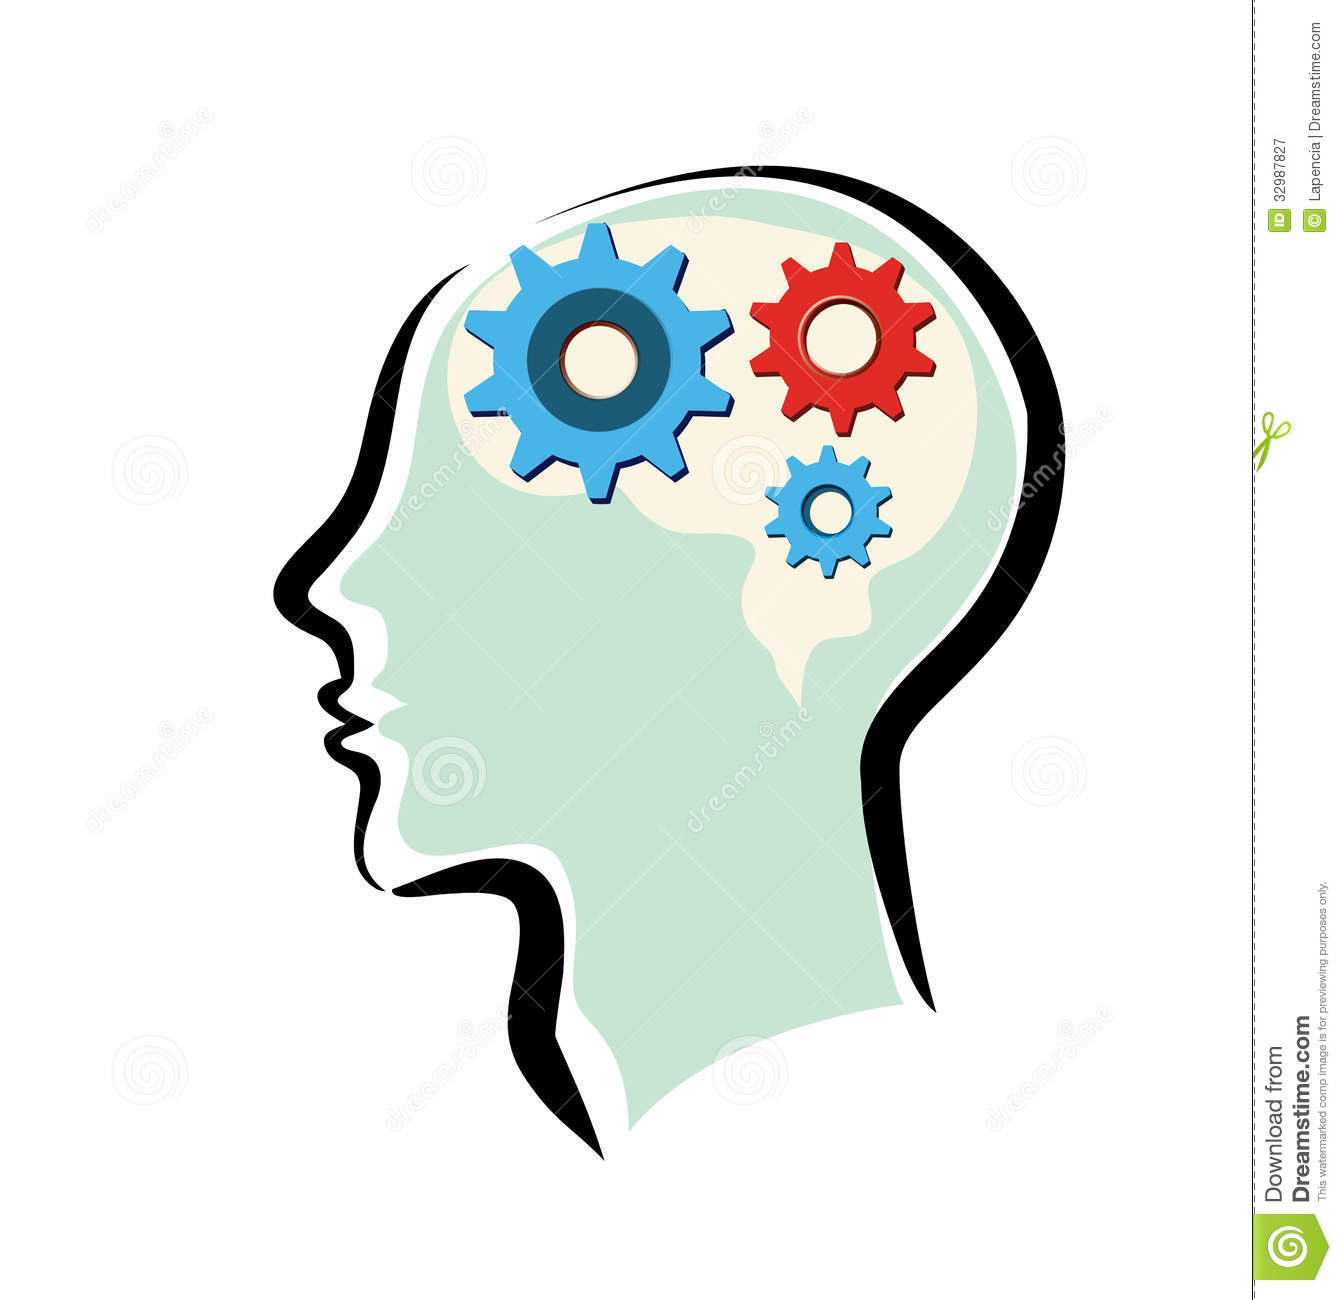 Thinking brain clipart 4 » Clipart Station.